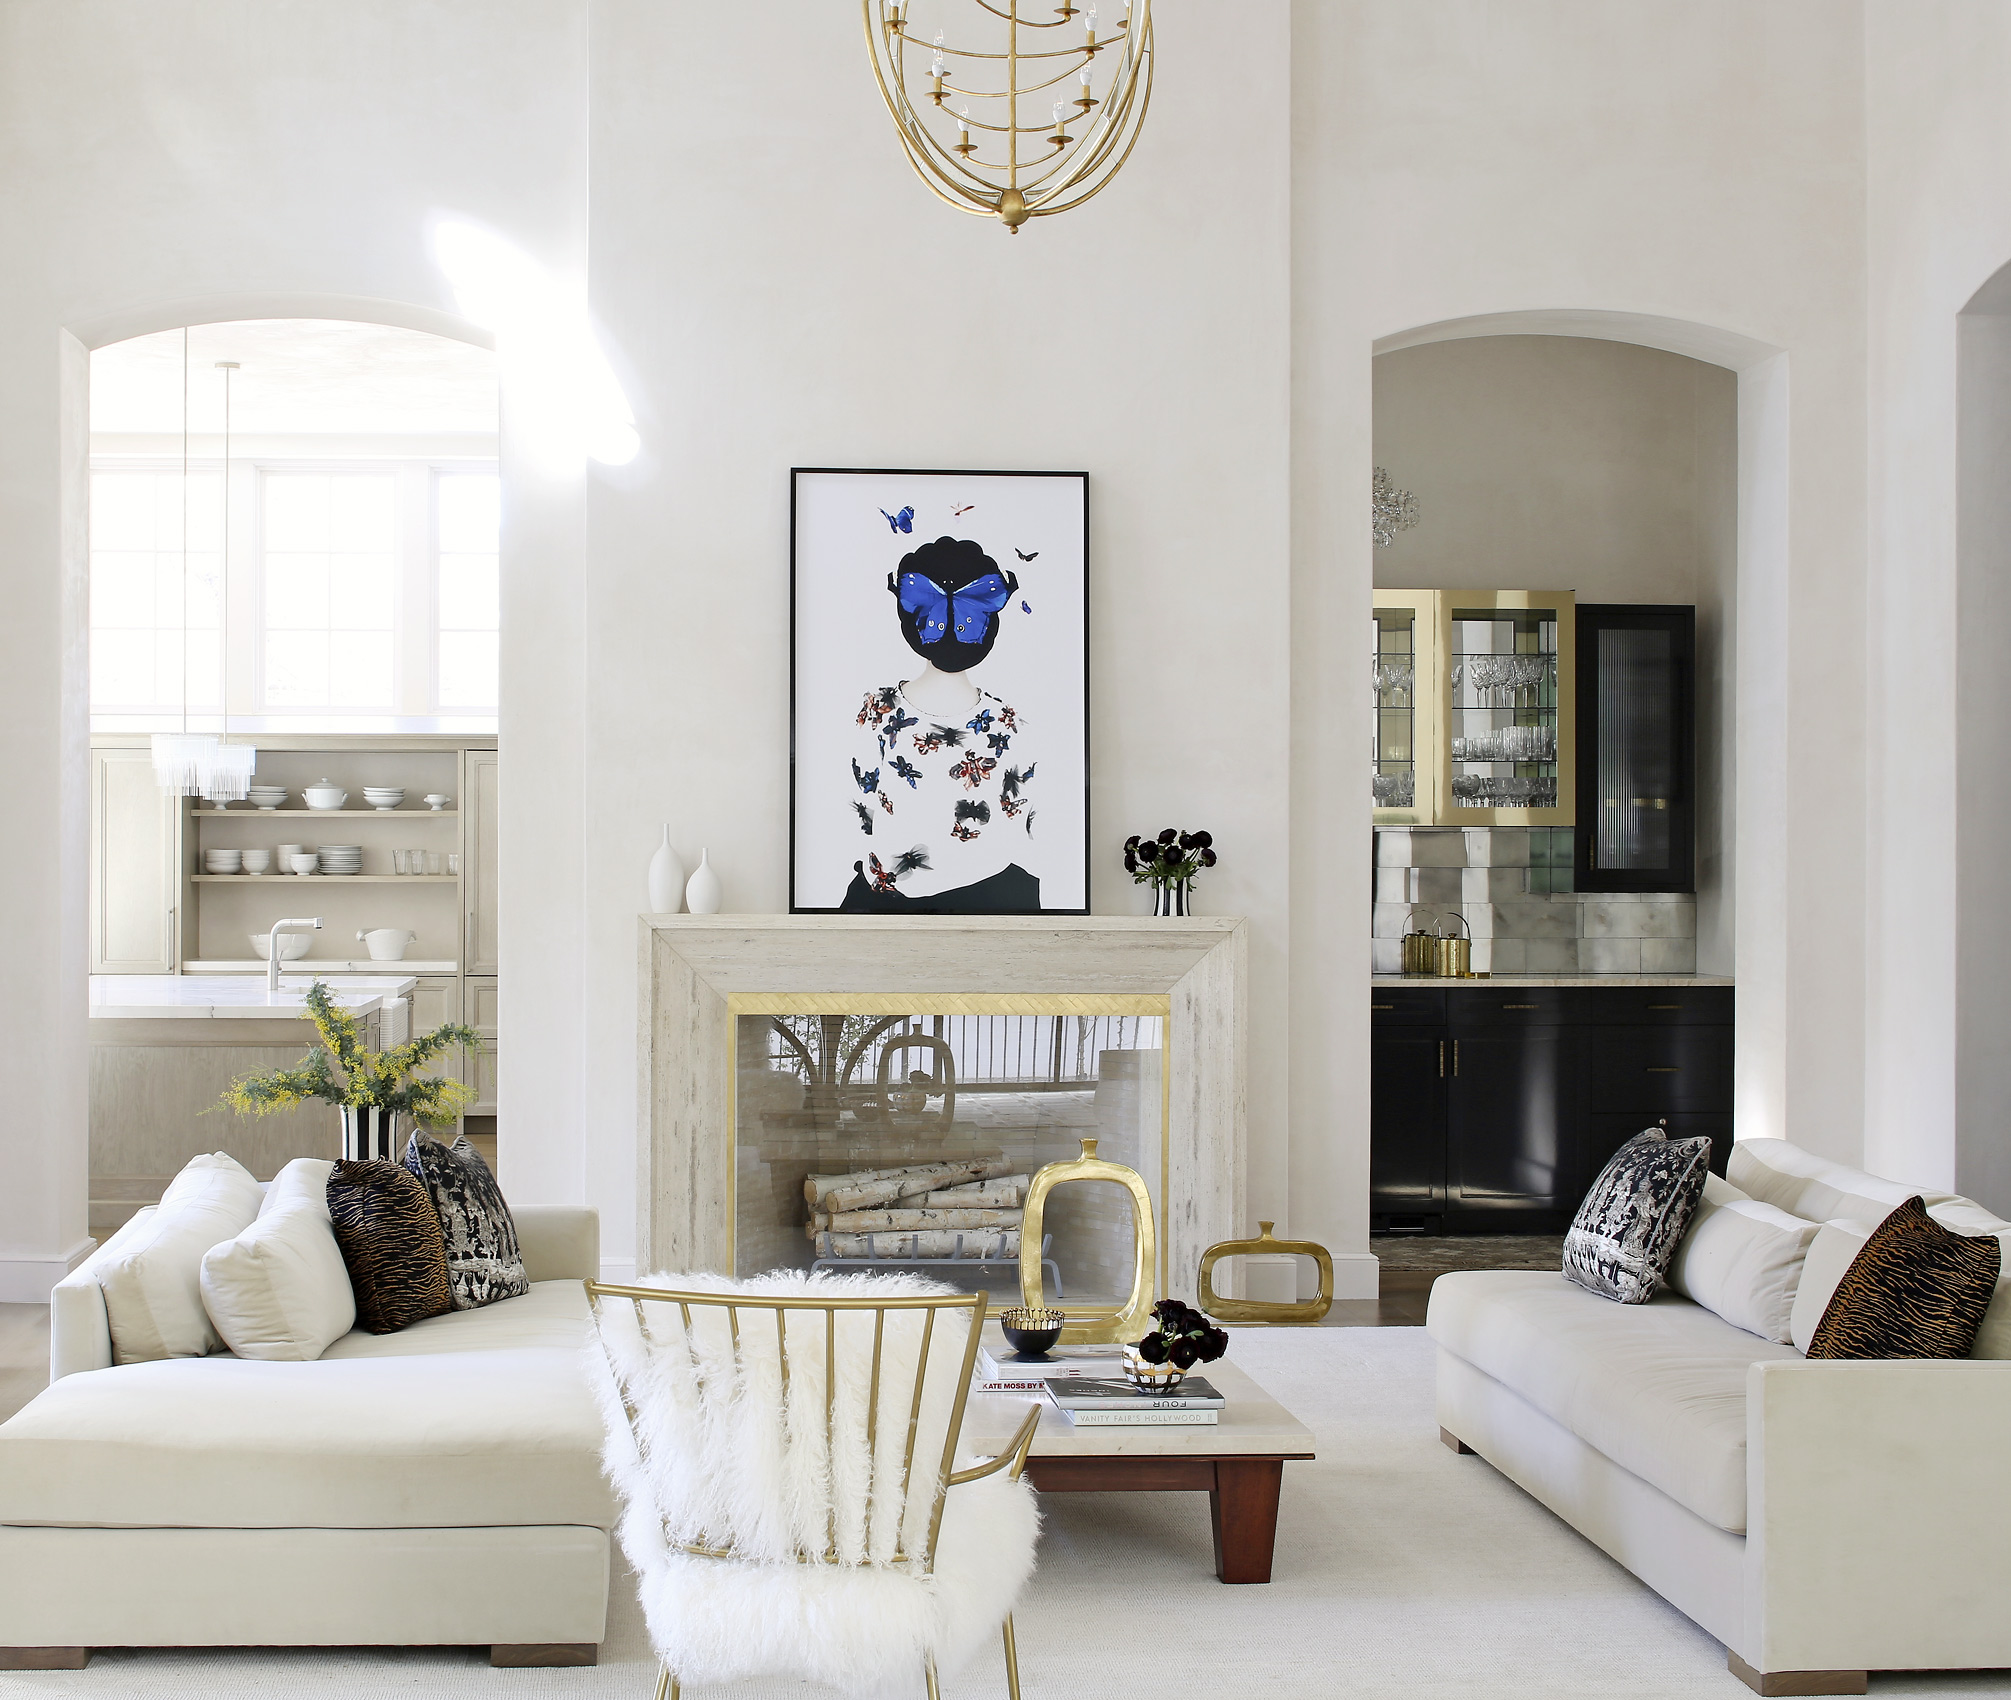 Eric Madigan Heck art hangs in a Bridget Beari Designs interior, Mali Azima photography.